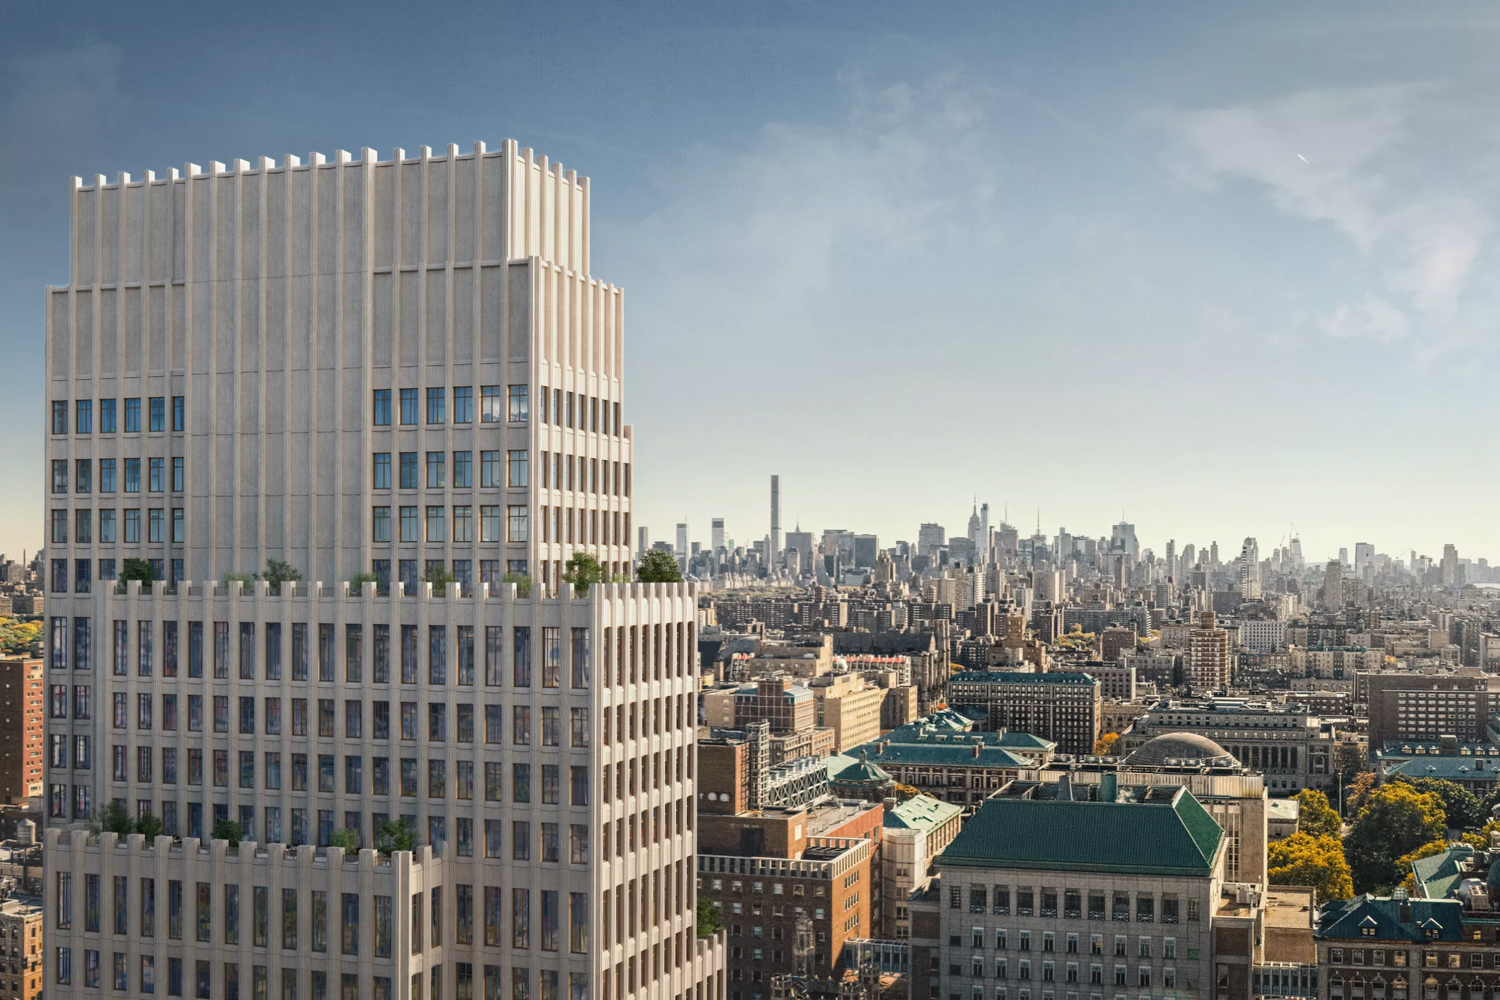 543 West 122nd Street, design by INC, rendering by Binyan Studios